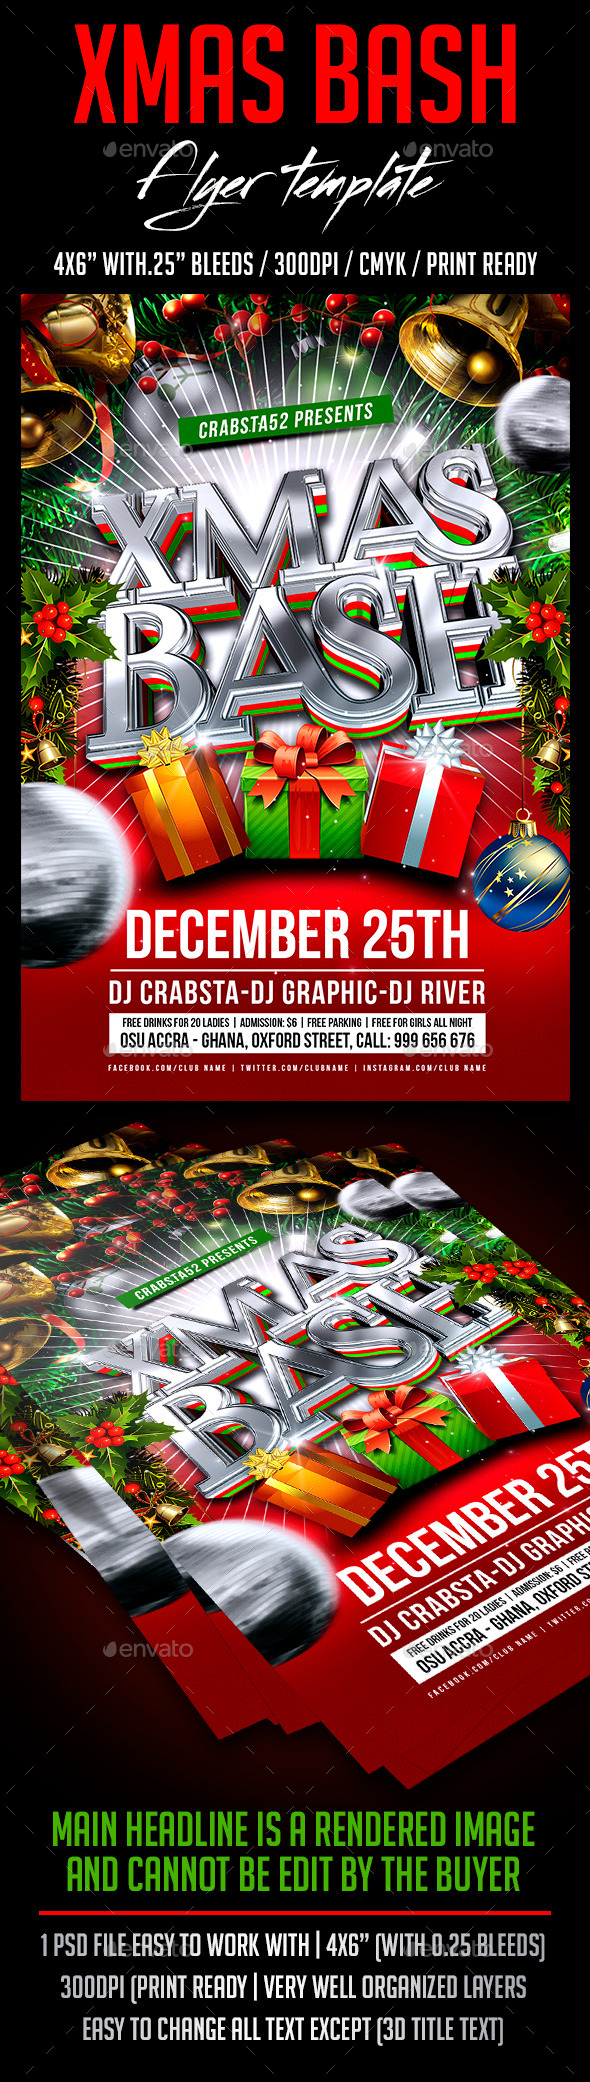 GraphicRiver Xmas Bash Flyer Template 9267123